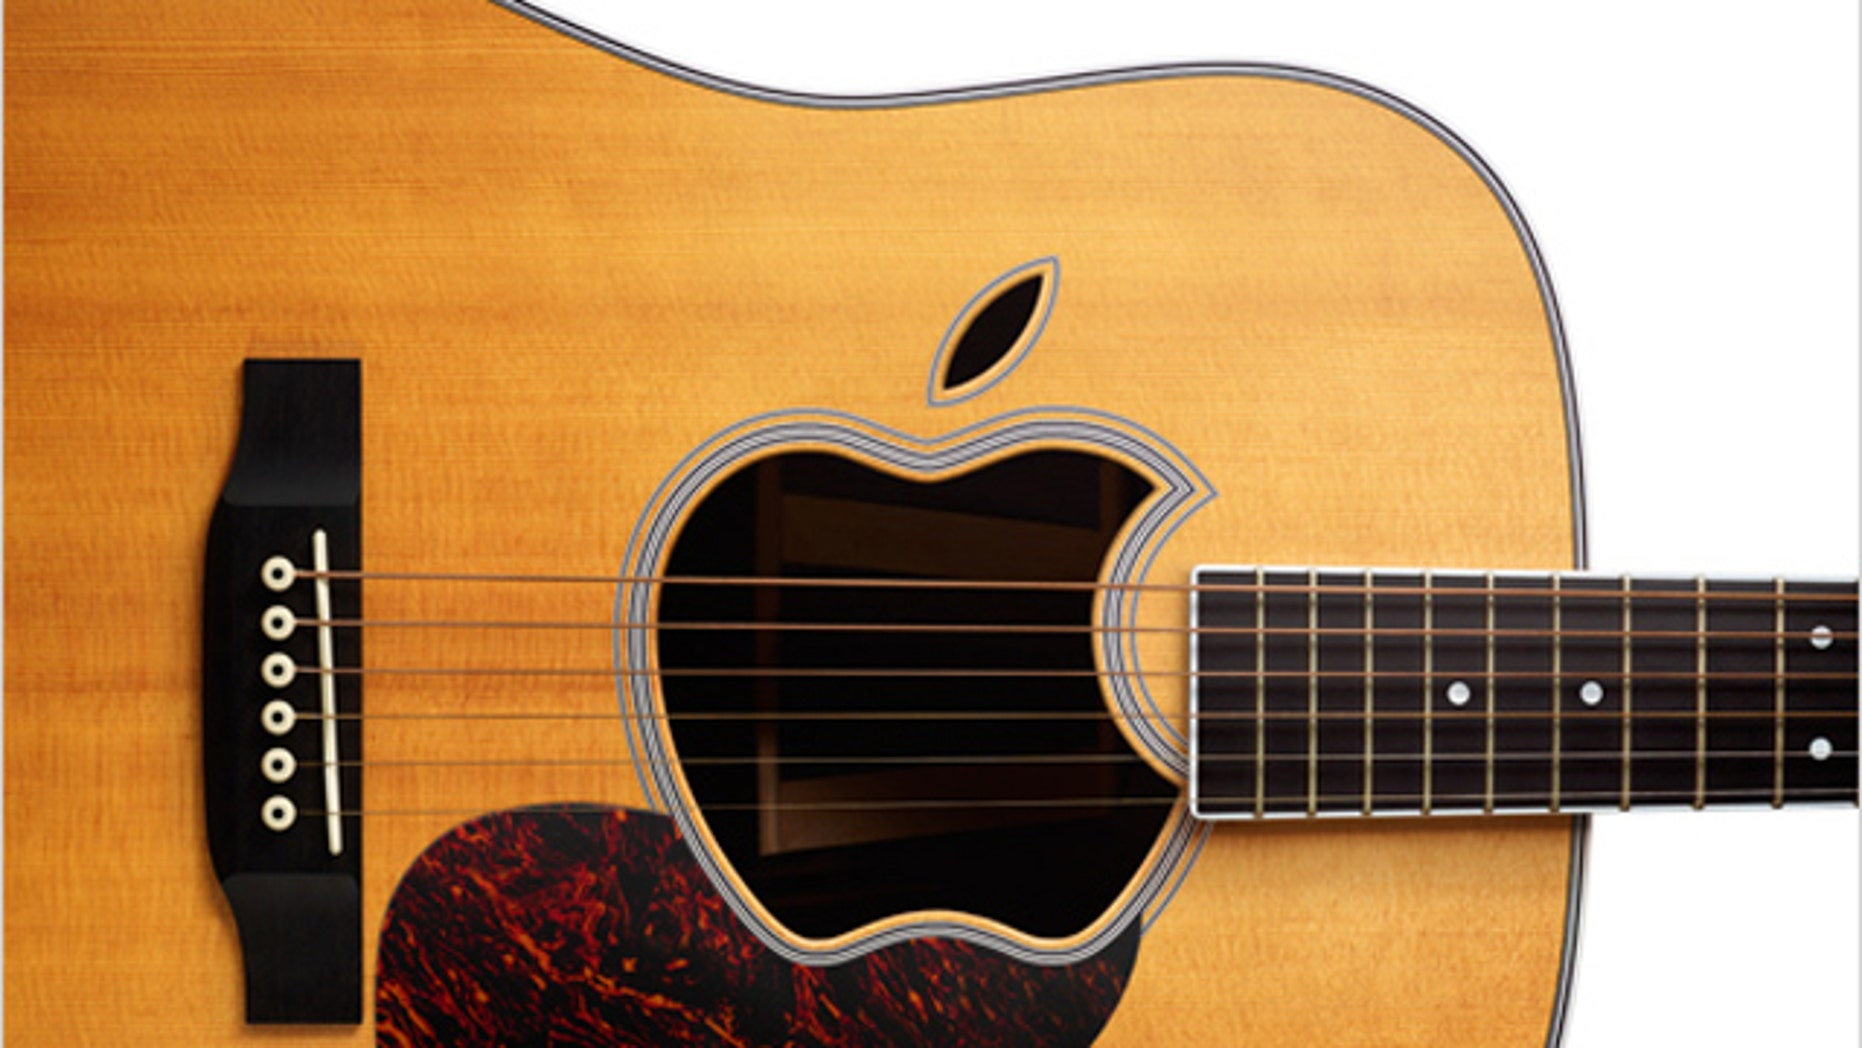 A guitar with an apple-shaped cut-out is featured in the invitation to Apple's upcoming event, scheduled for Wednesday, September 1, at the Yerba Buena Arts Center in San Francisco. Clearly, the event will focus on music.